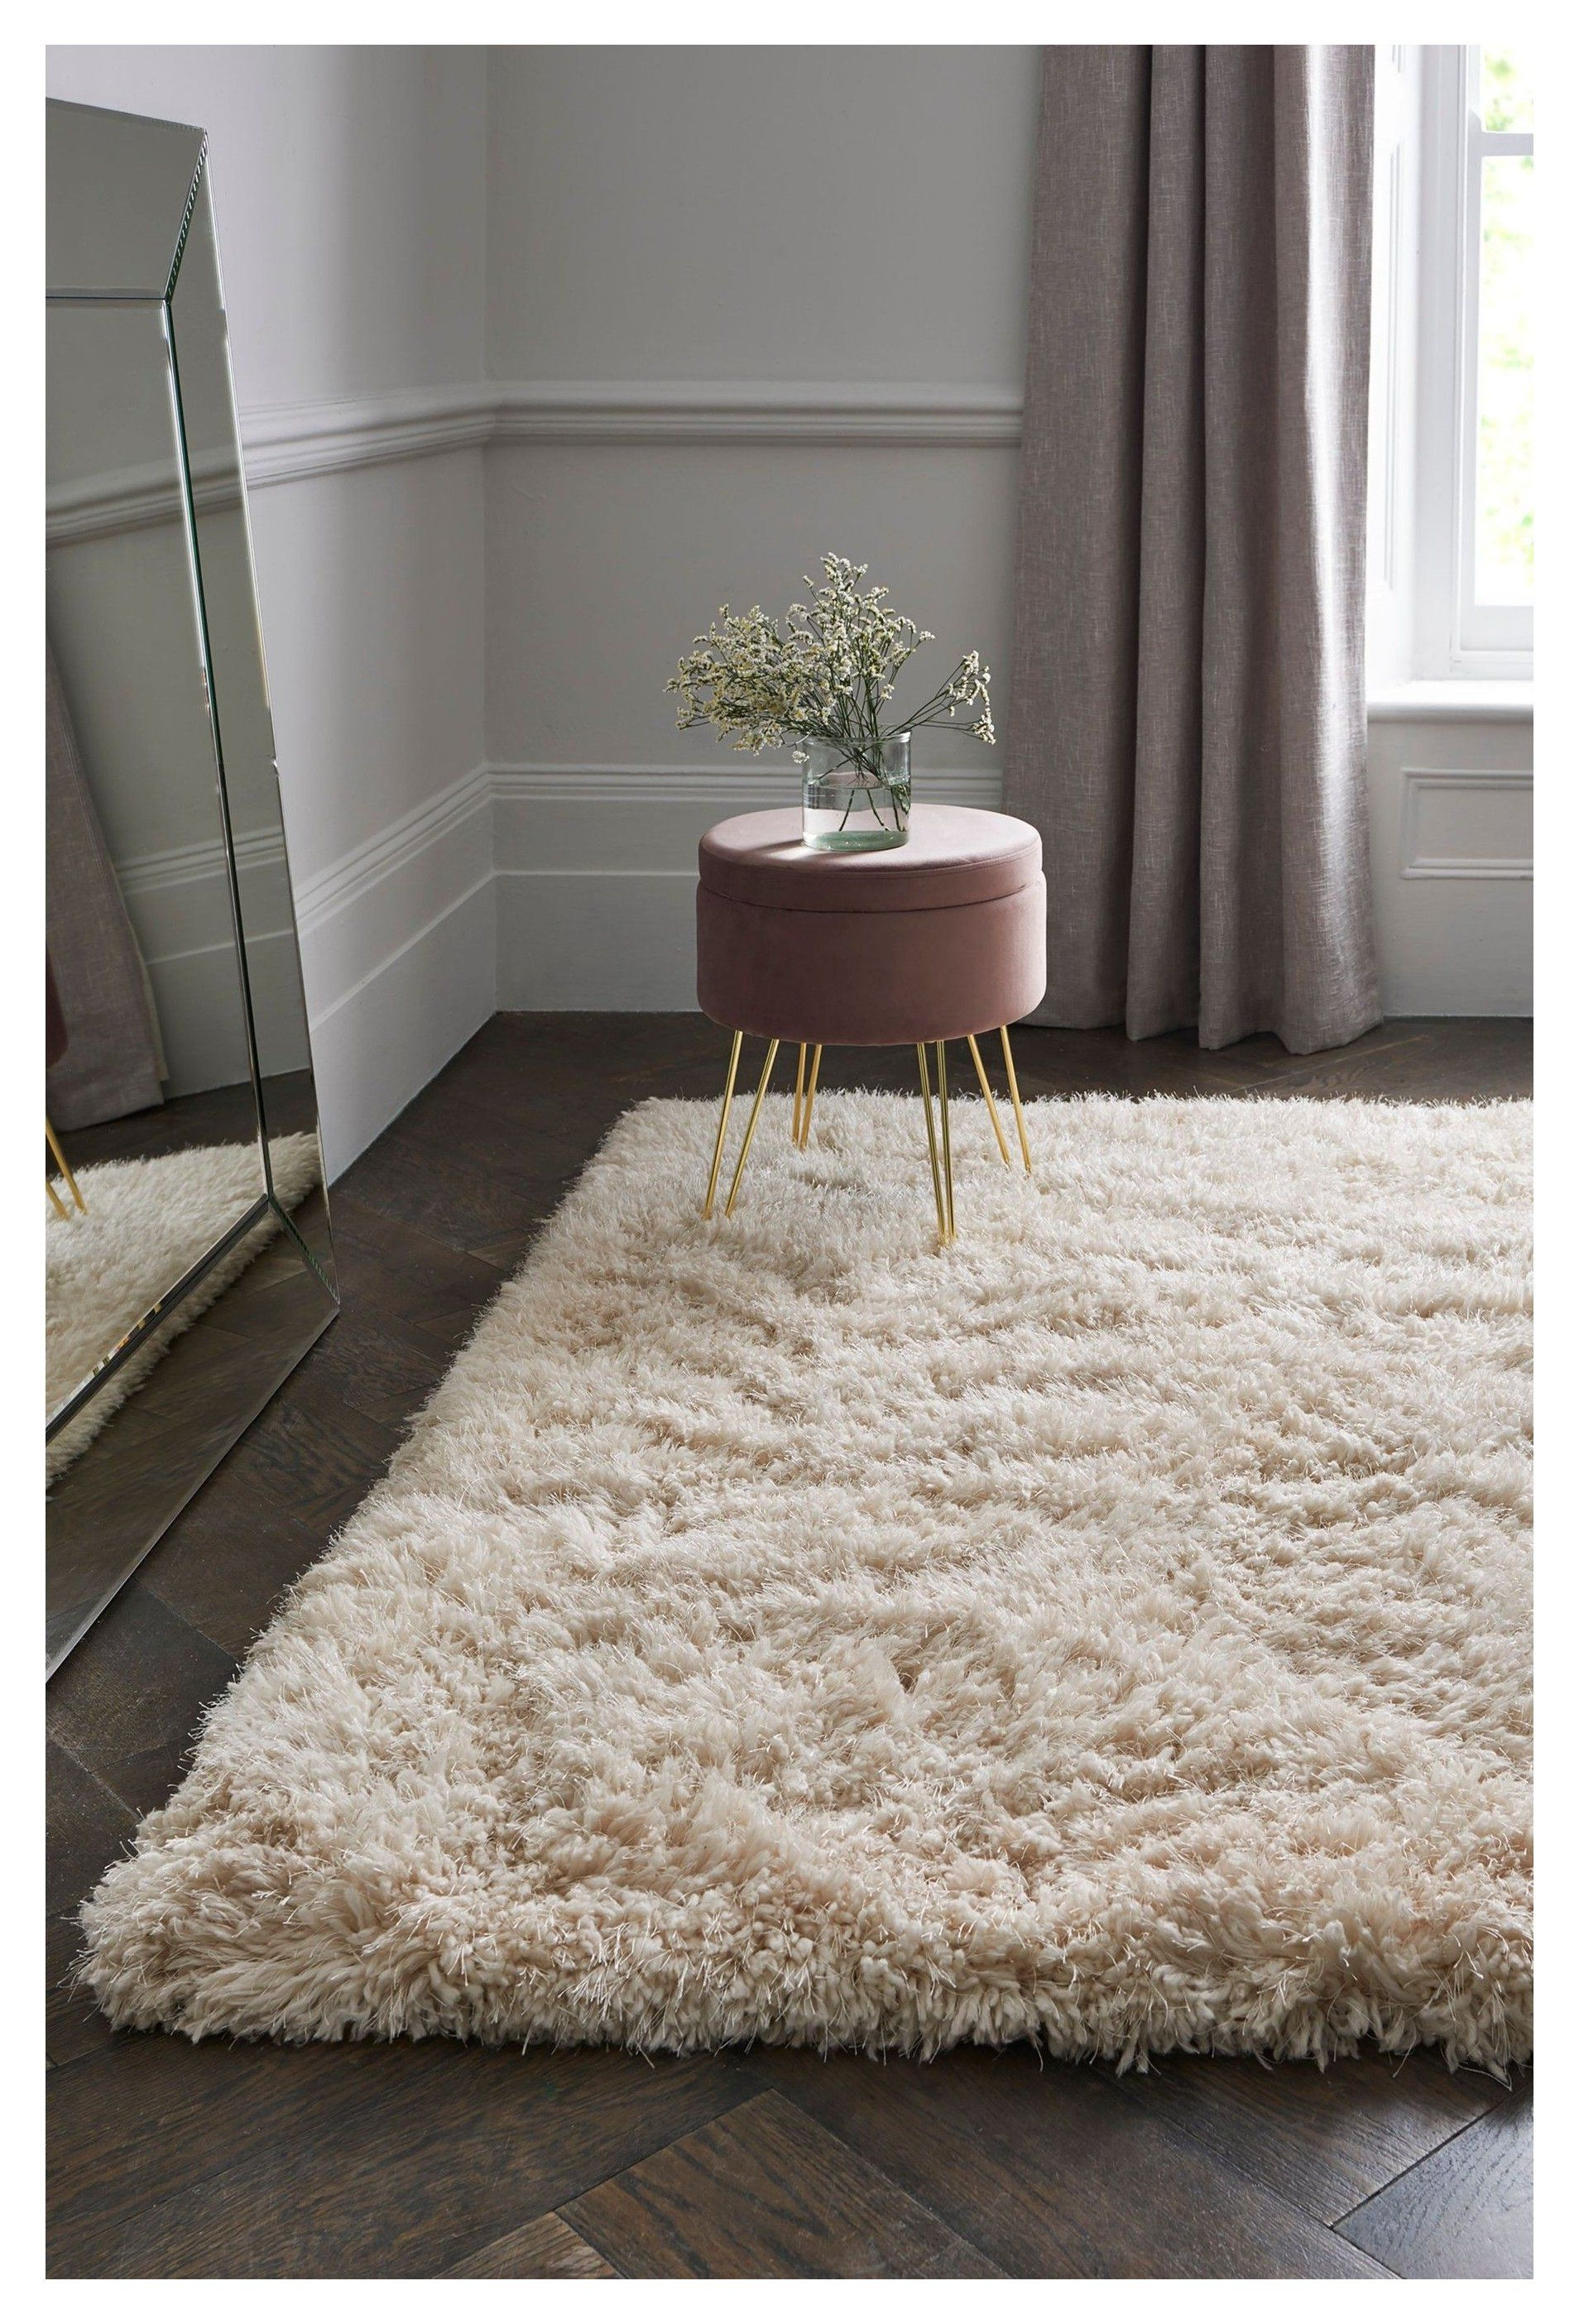 Rugs Modern Rugs Large Wool Rugs Fluffy Rugs In Bedroom Next Grace Luxurious High Pile Rug White Rugs In Living Room Fluffy Rug Rugs On Carpet